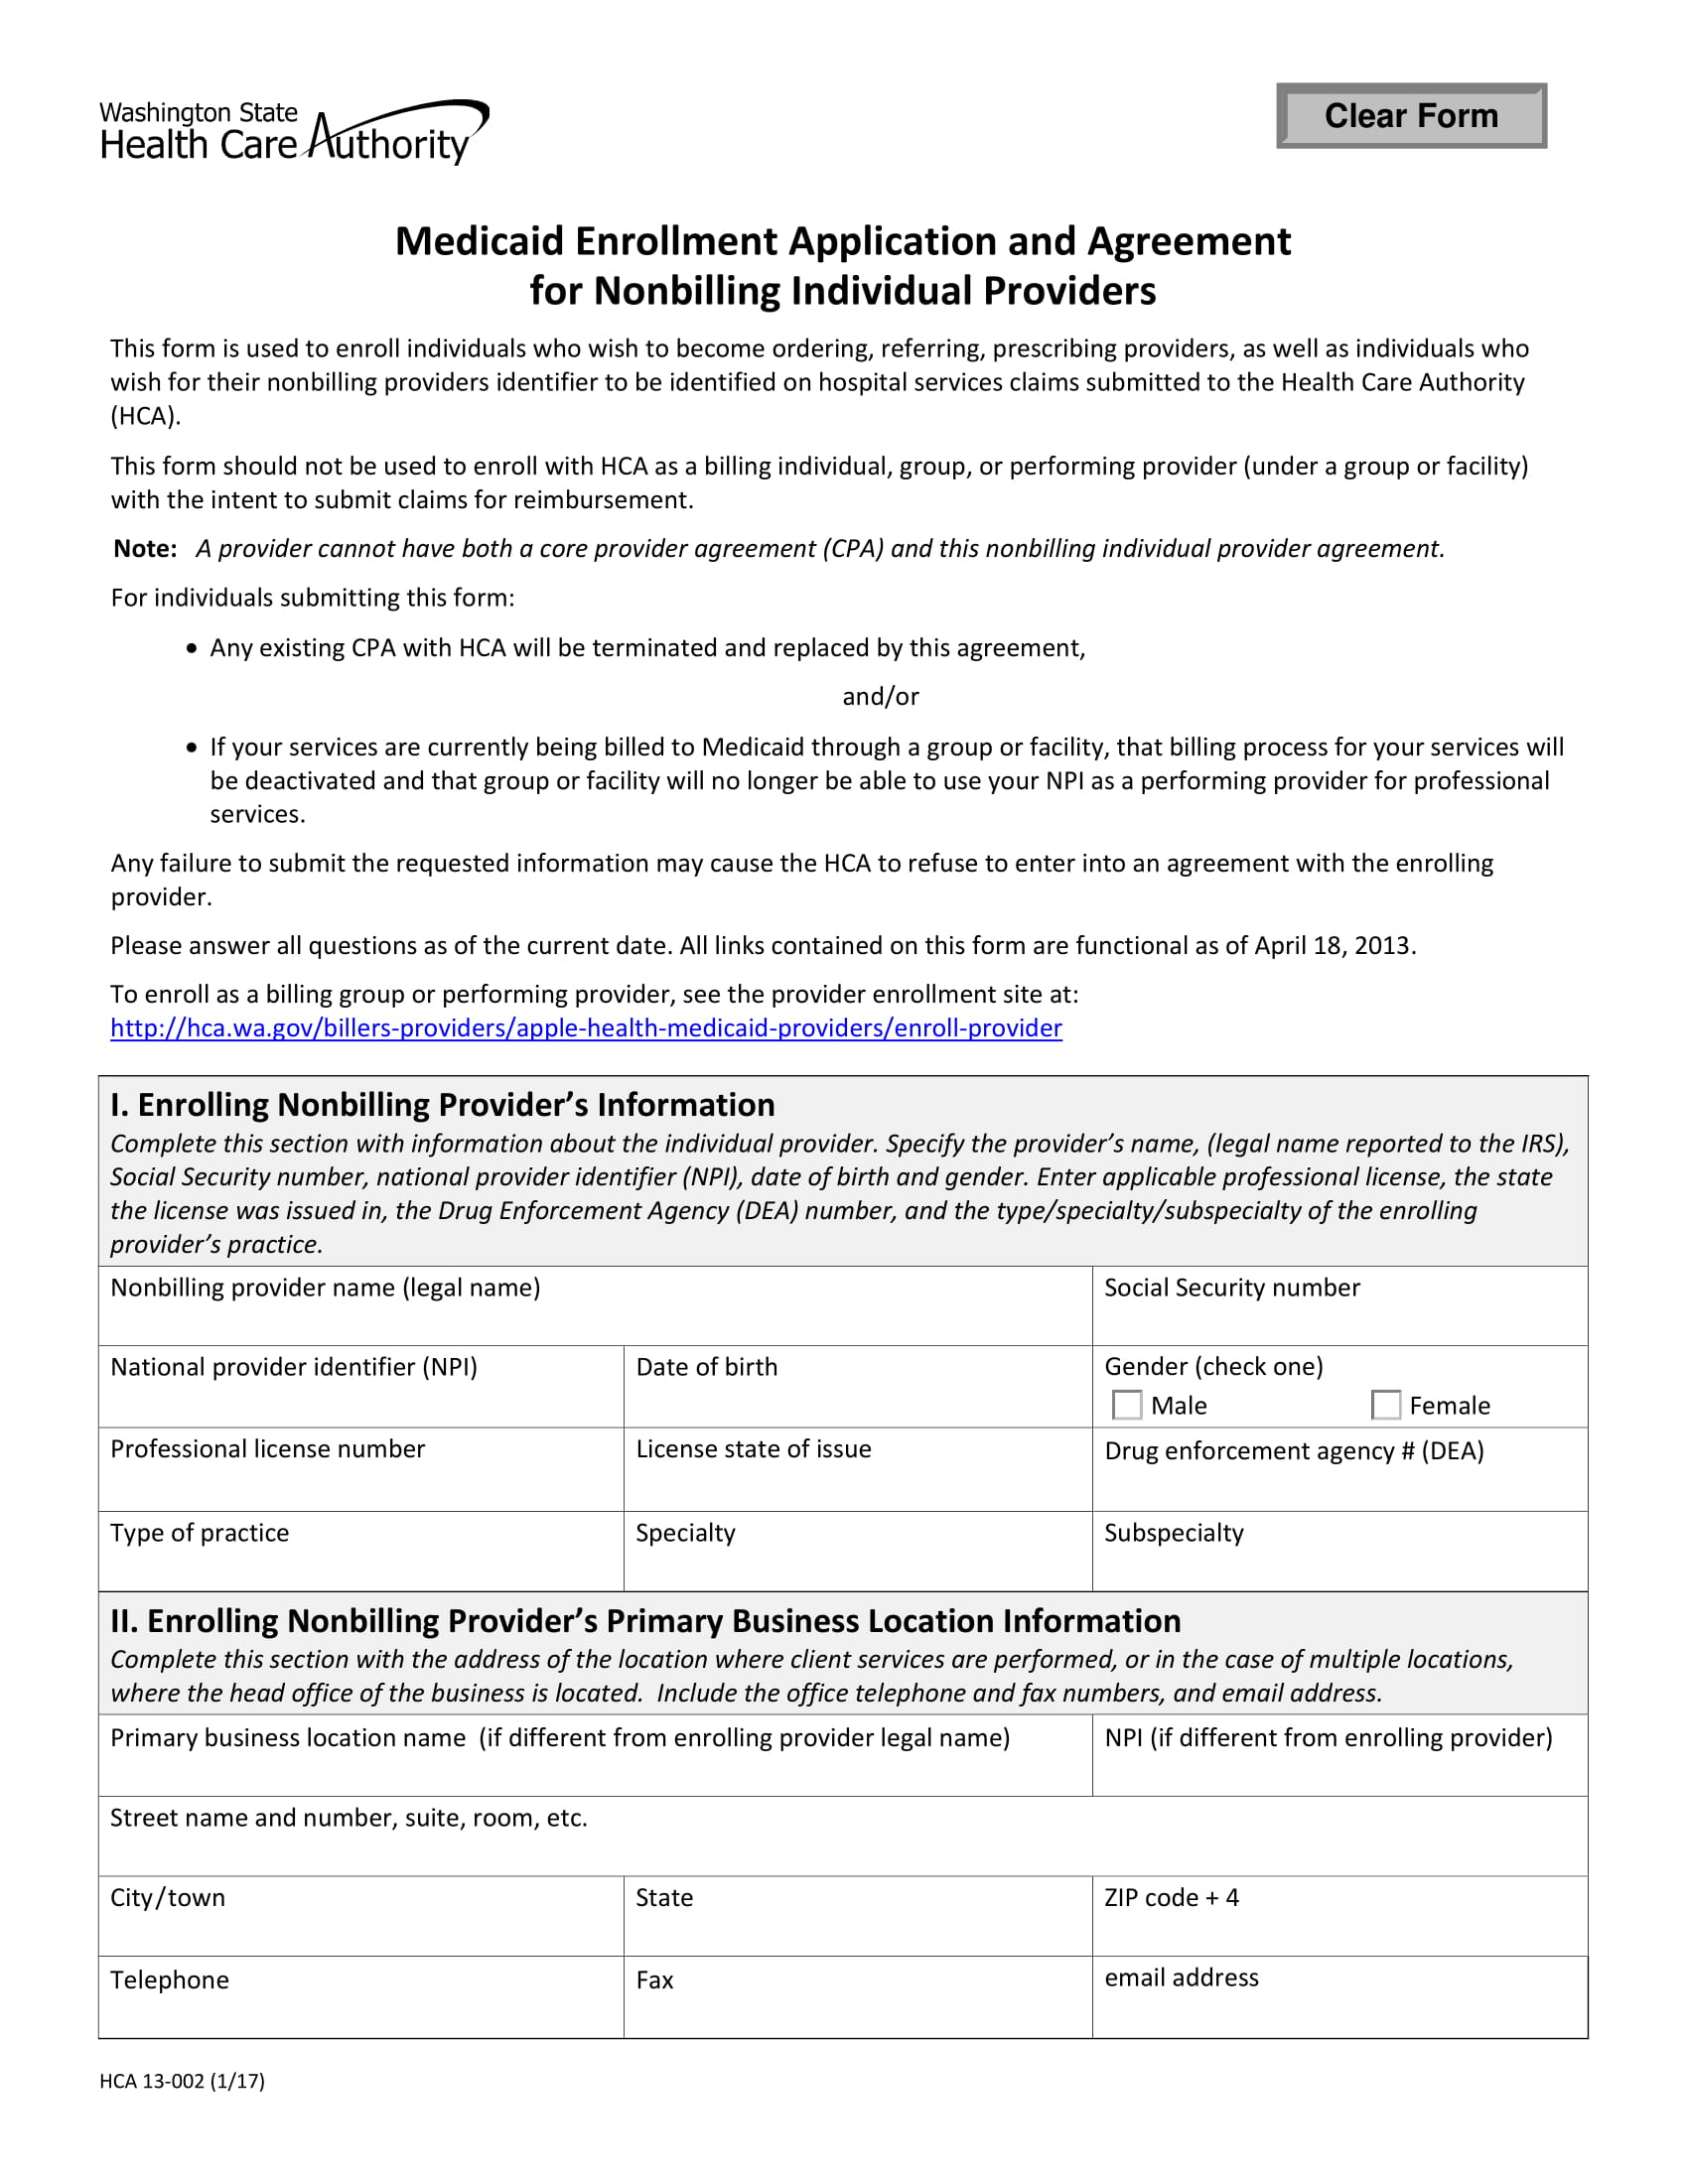 medicaid enrollment application and agreement contract form 1